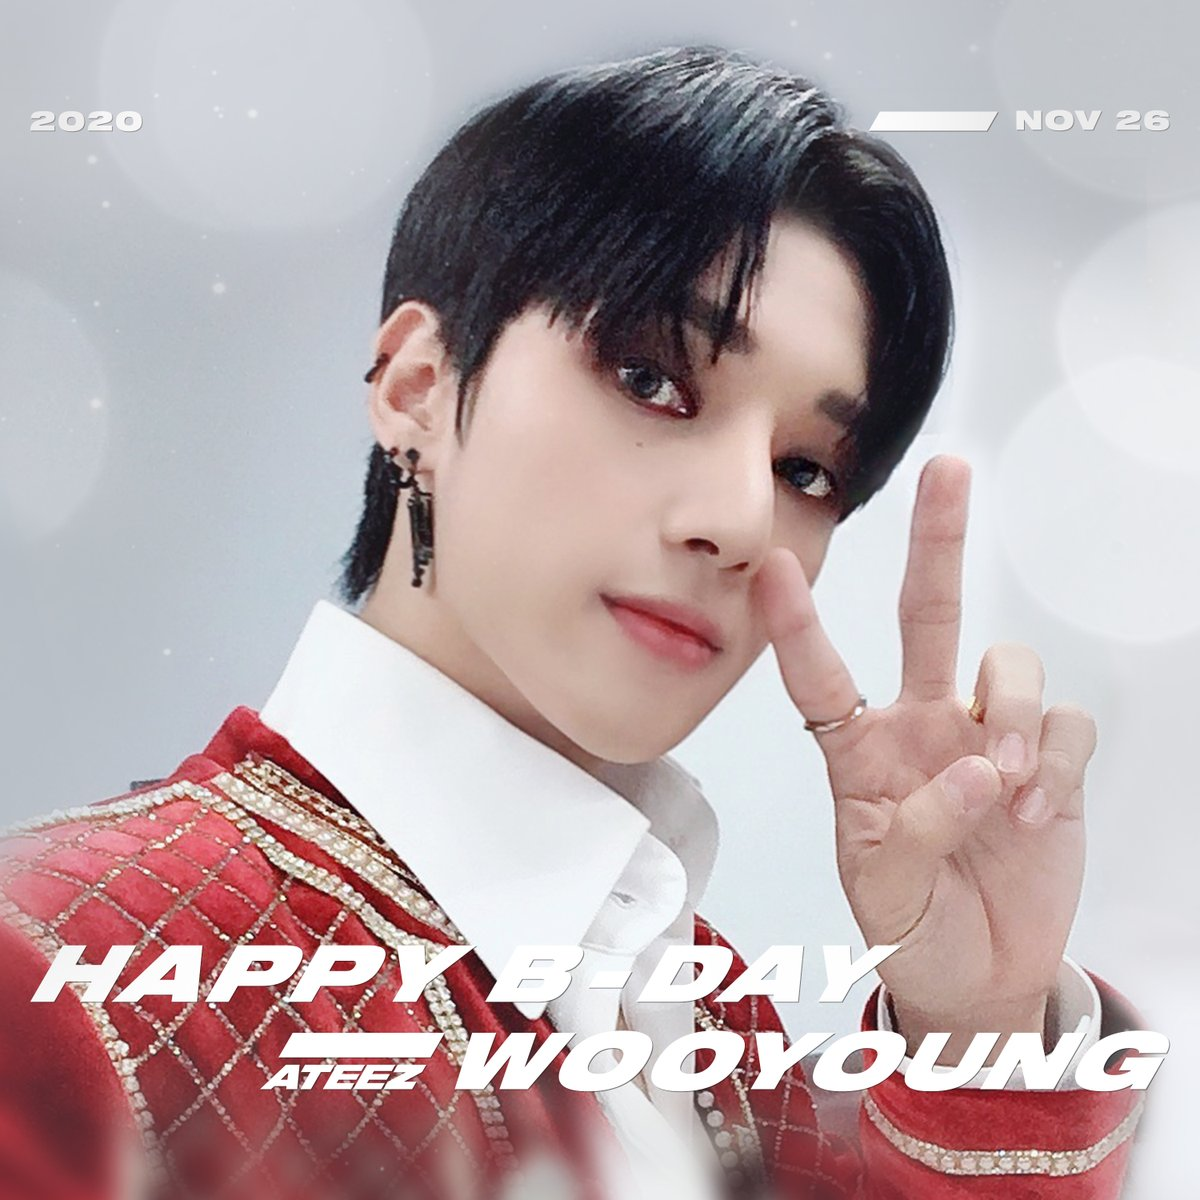 @ATEEZofficial's photo on wooyoung